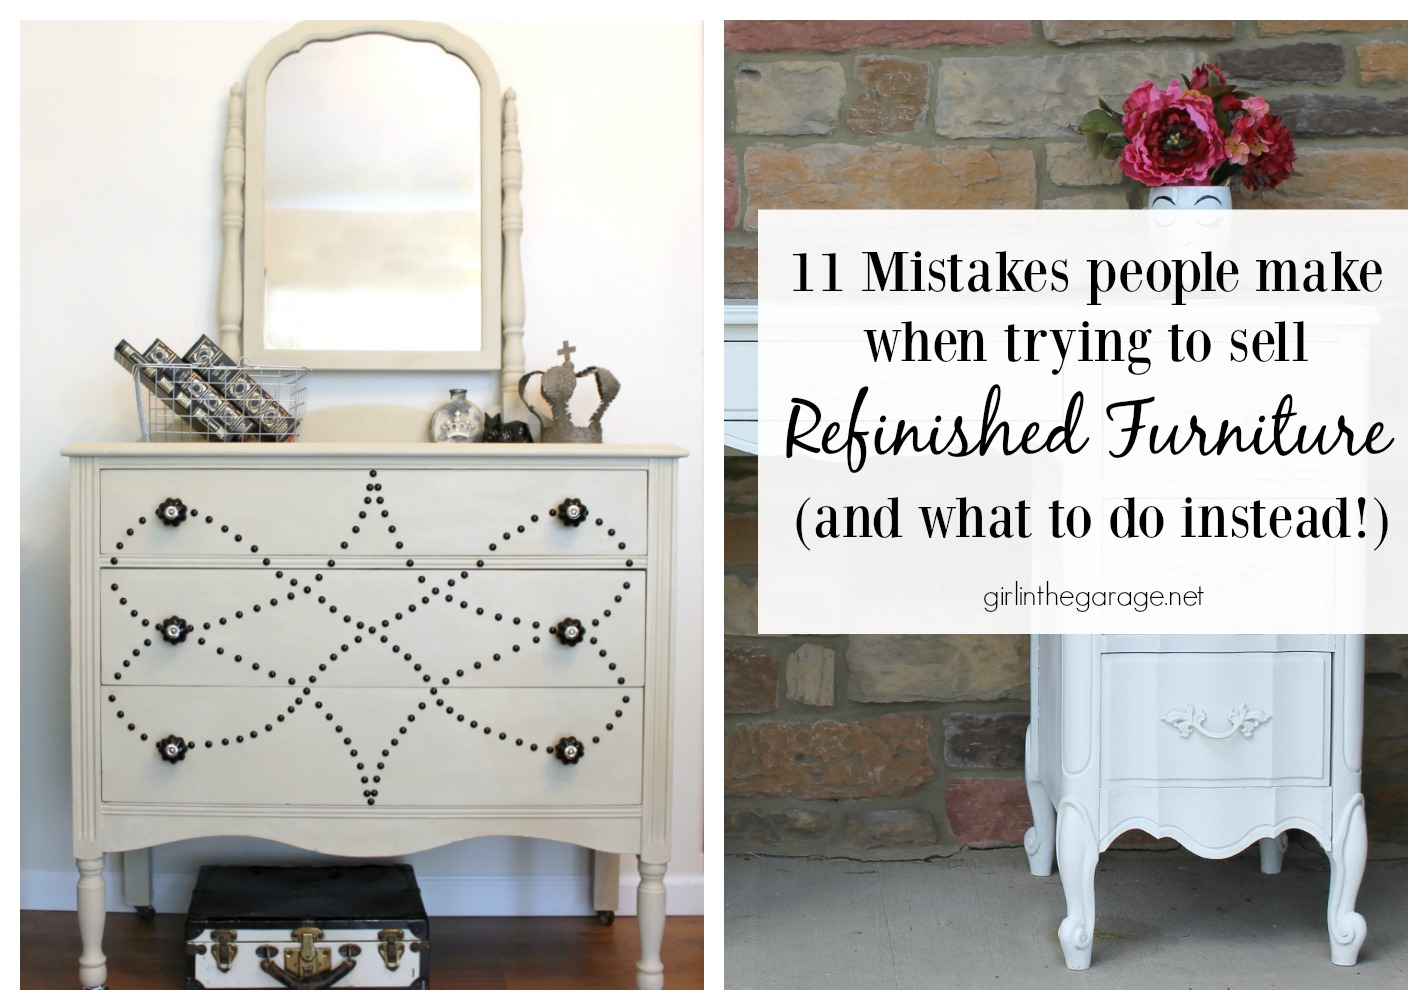 Mistakes People Make When Trying to Sell Refinished Furniture - Girl in the Garage